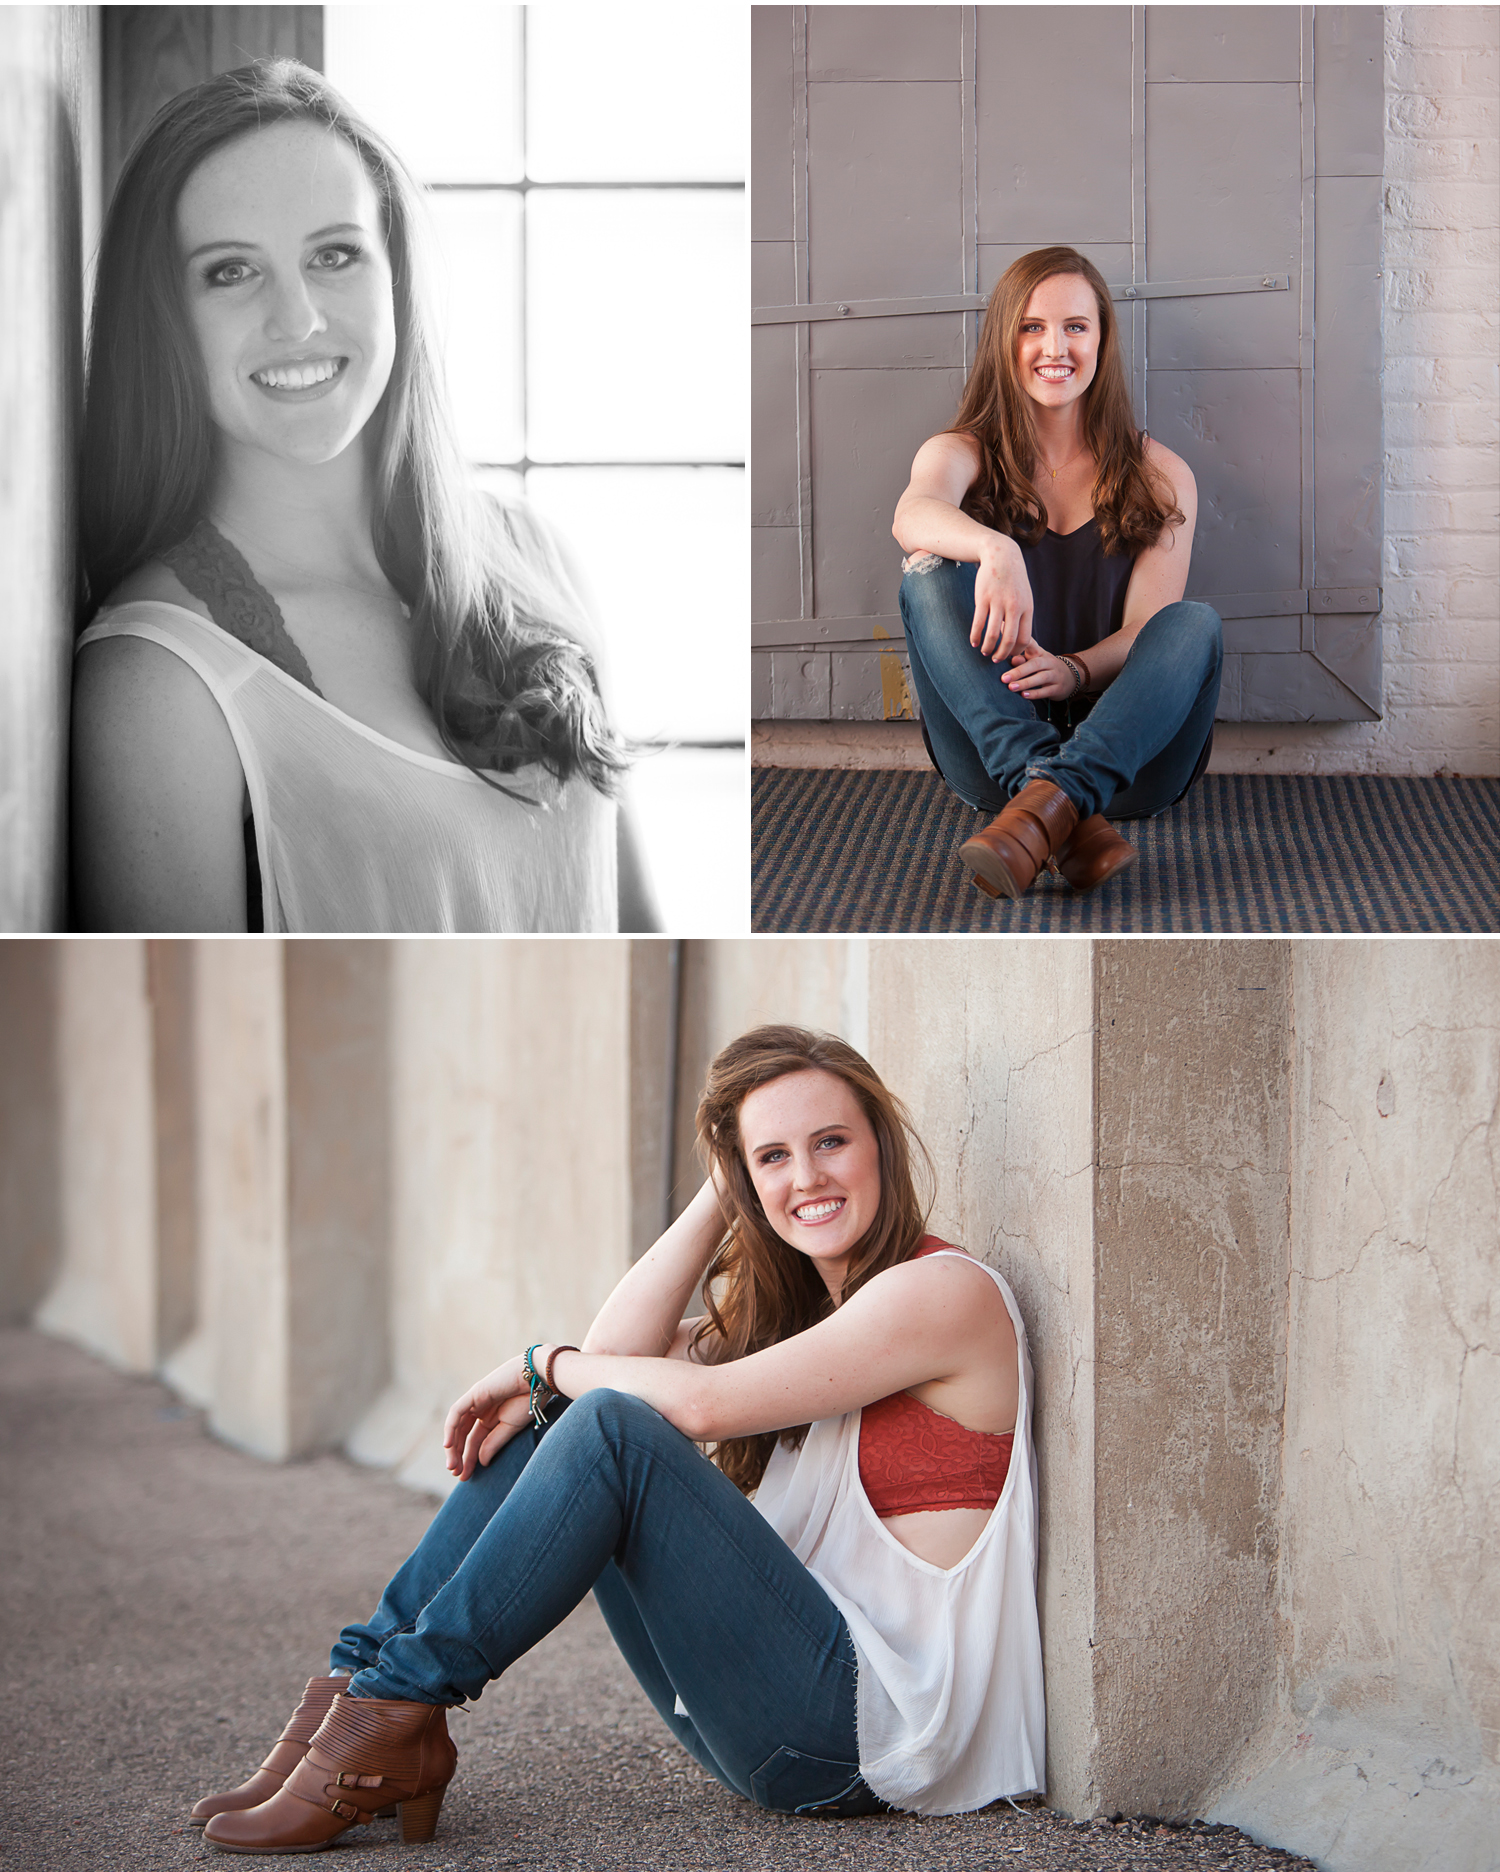 High School Senior Portraits in vintage factory building in Denver. Photographer Jennifer Koskinen, Merritt Design Photo